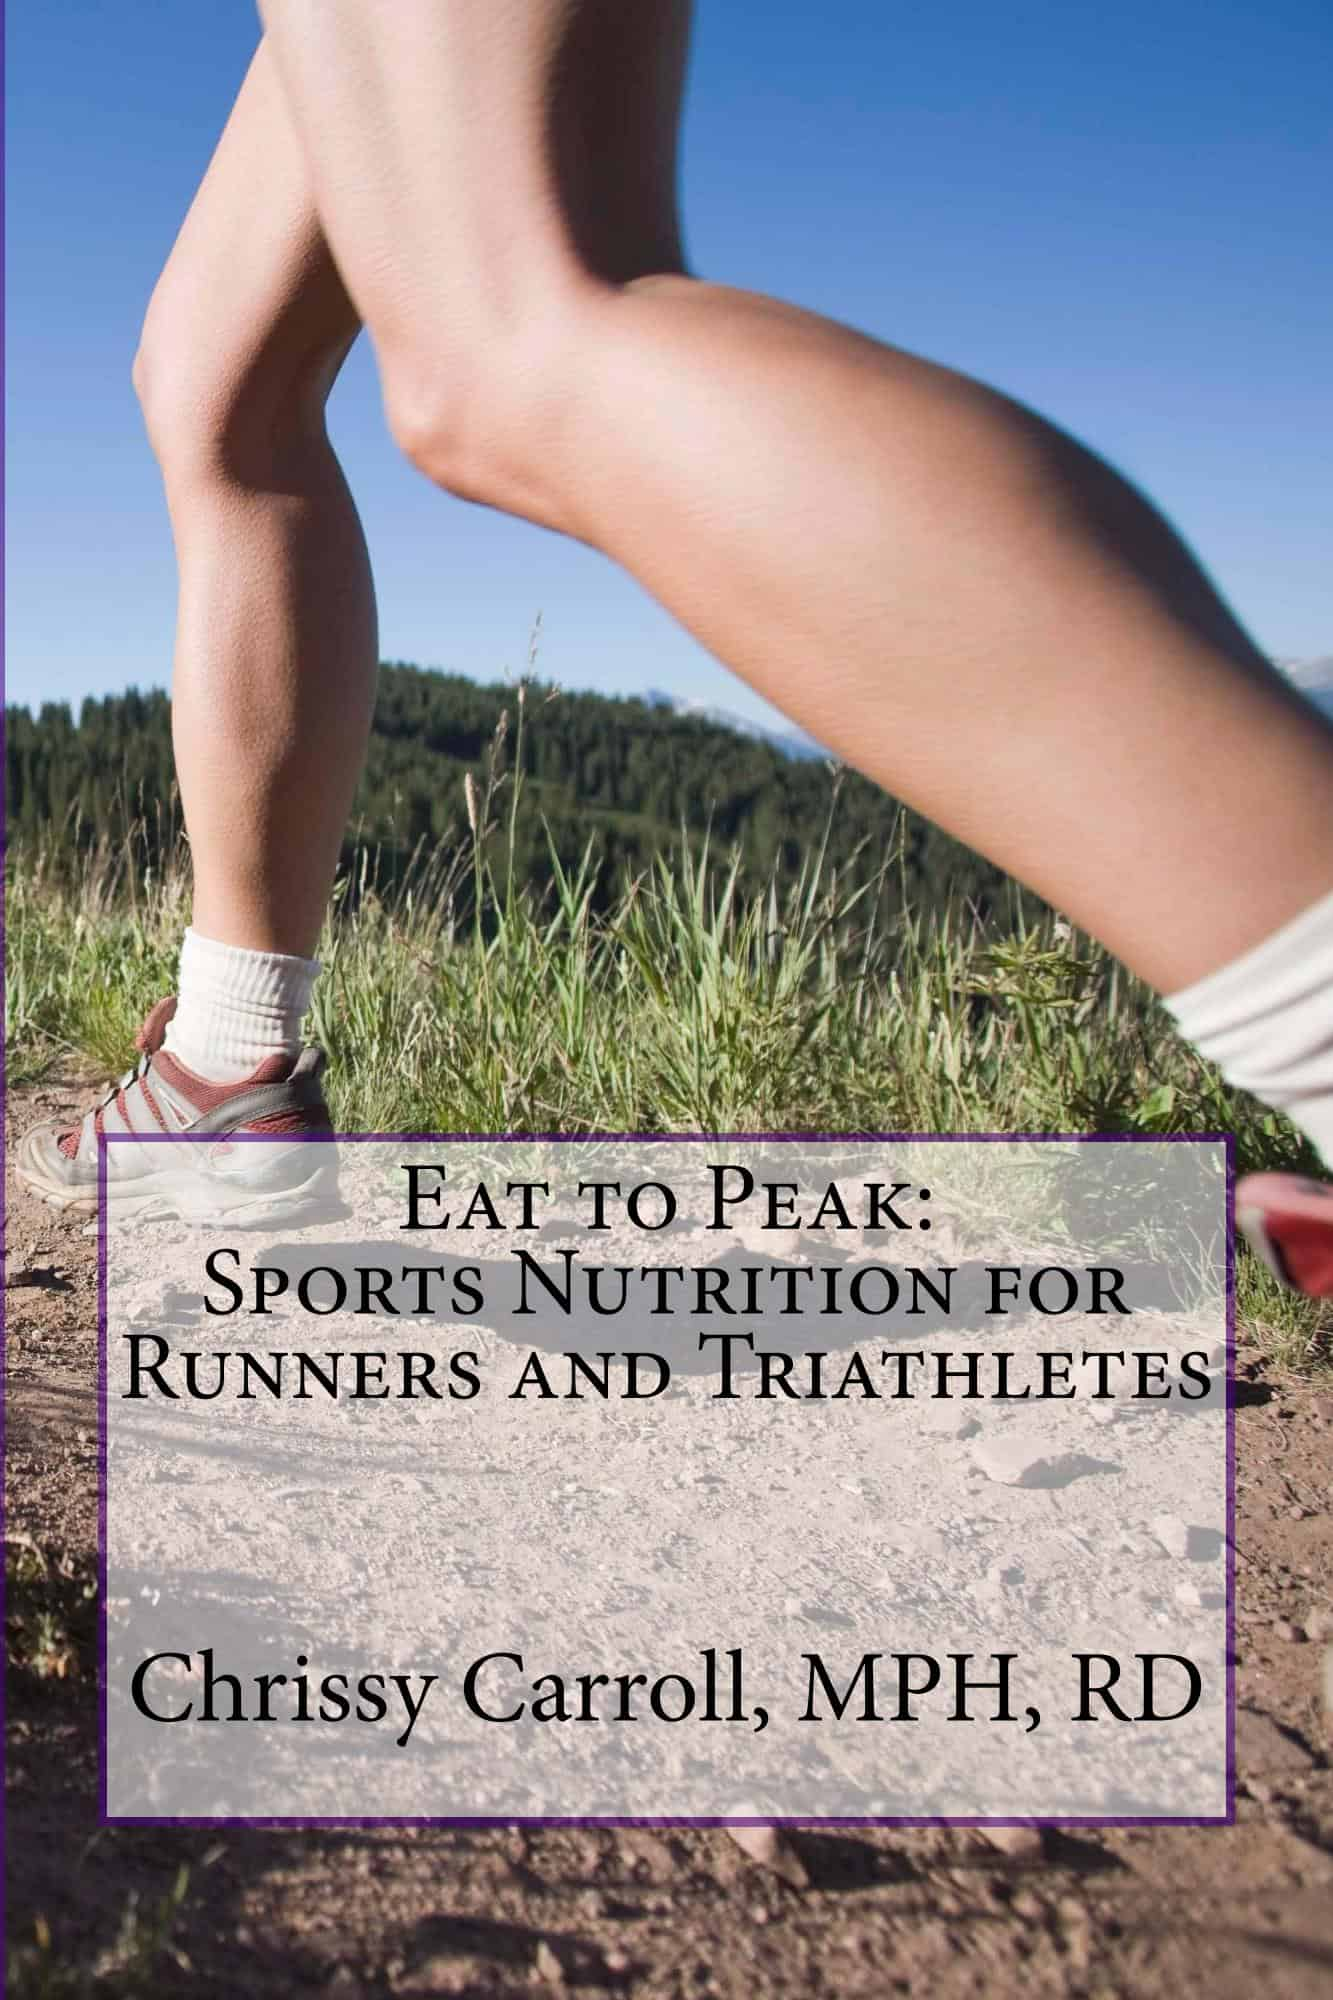 Sports Nutrition Book For Runners And Triathletes